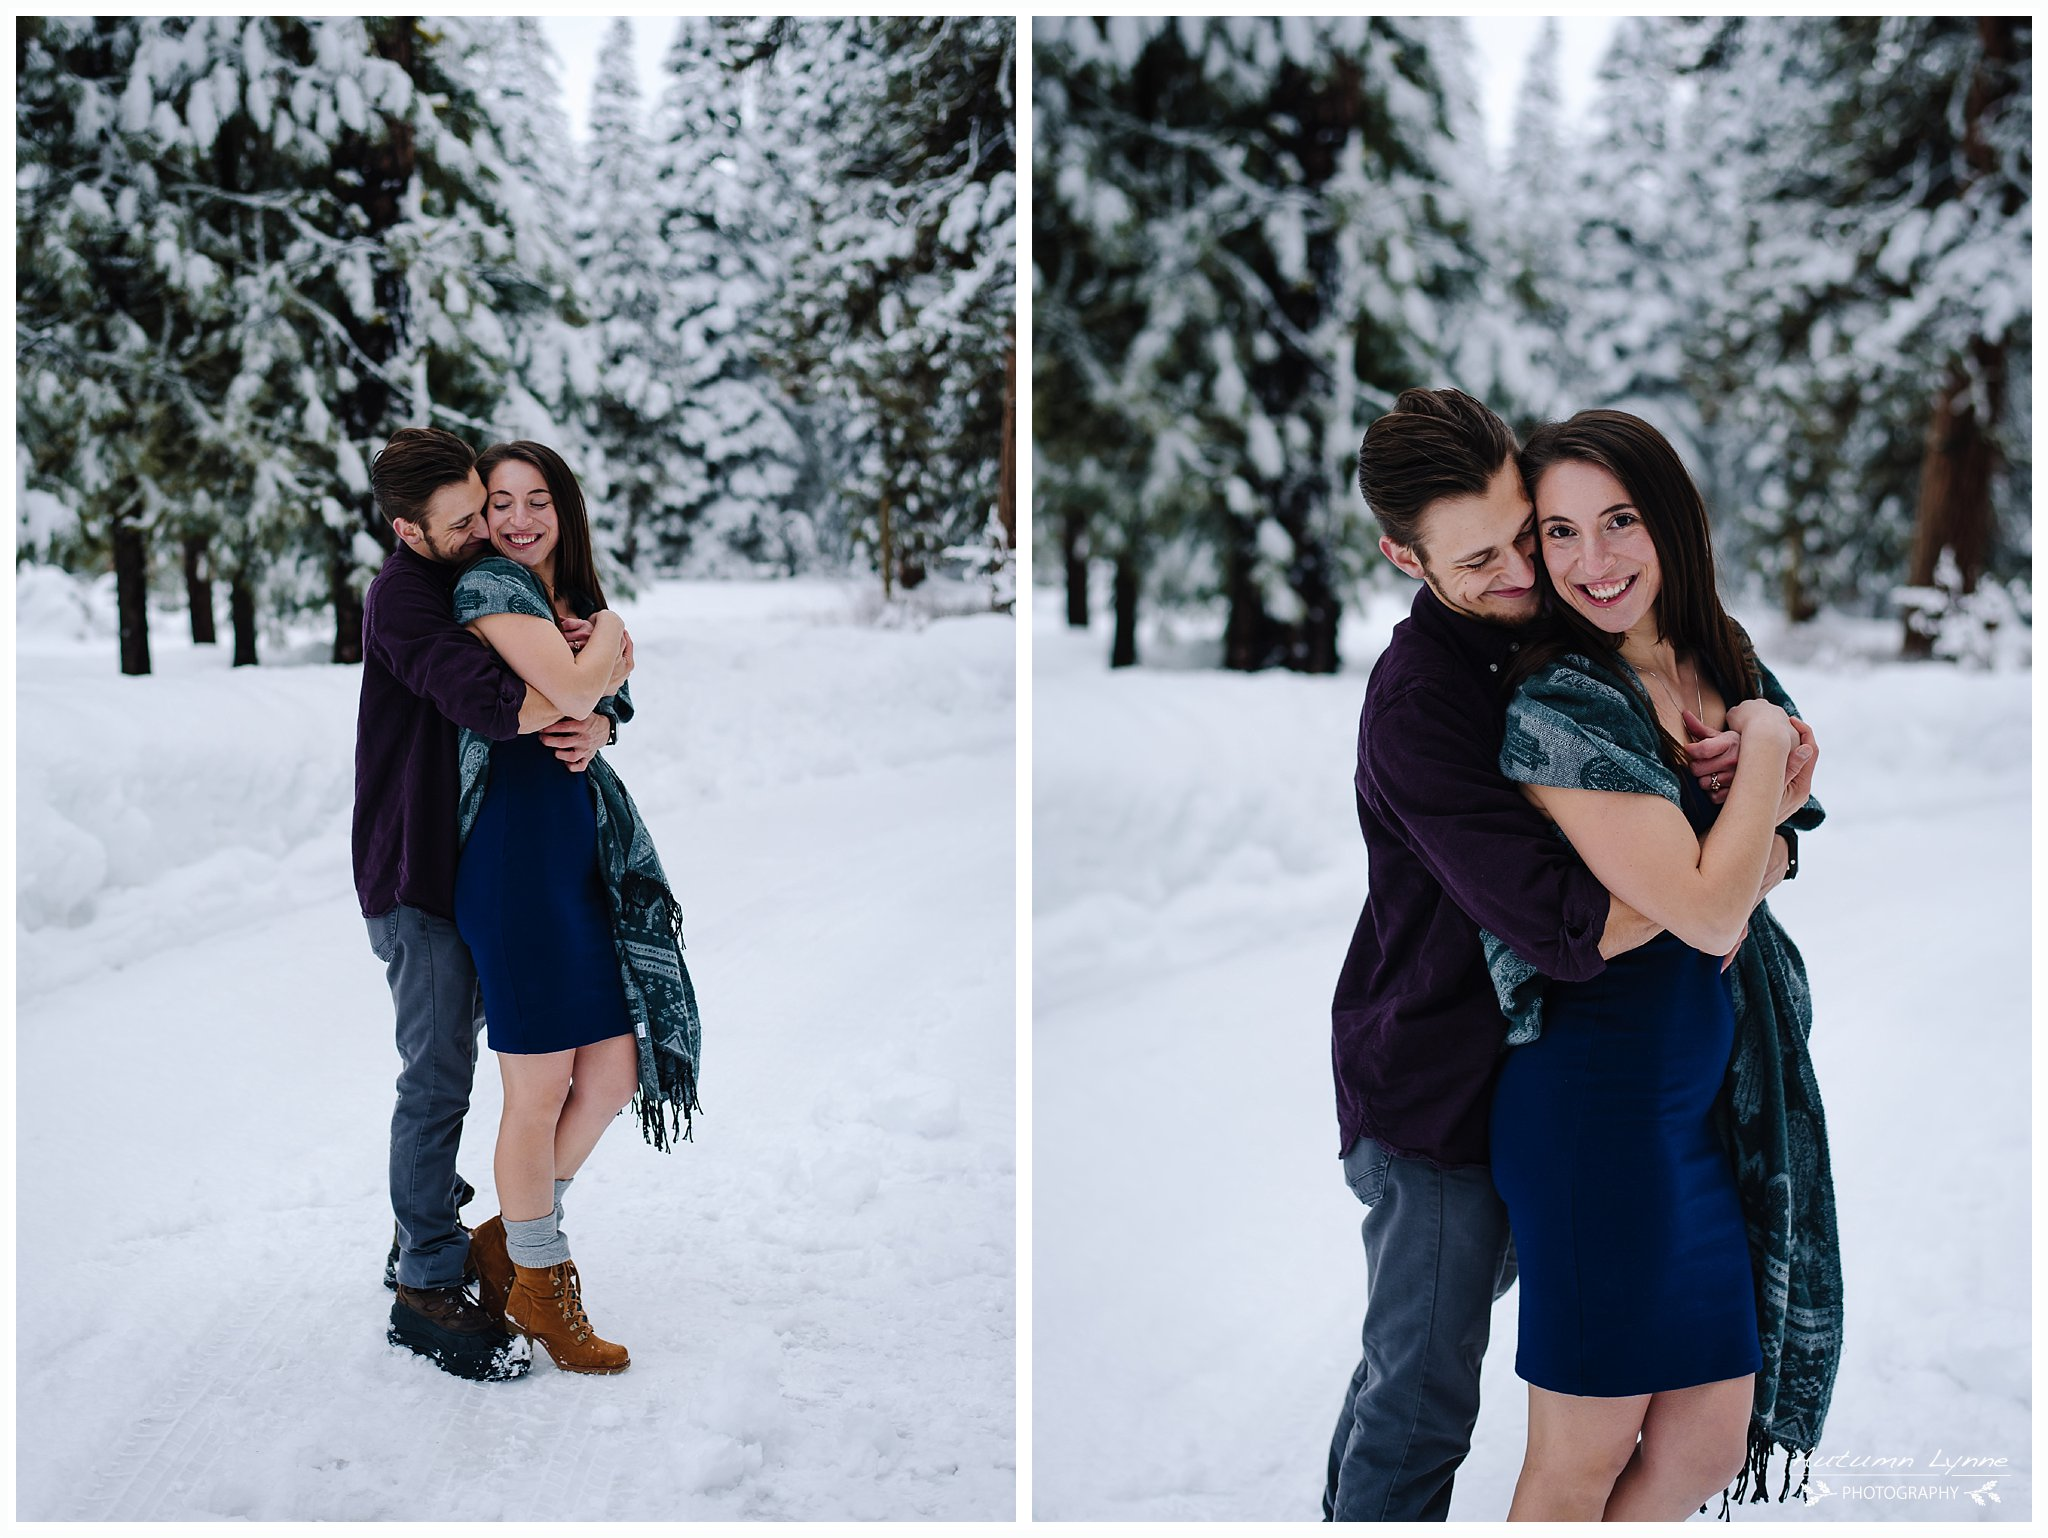 Idaho-winter-engagement-photo-ideas